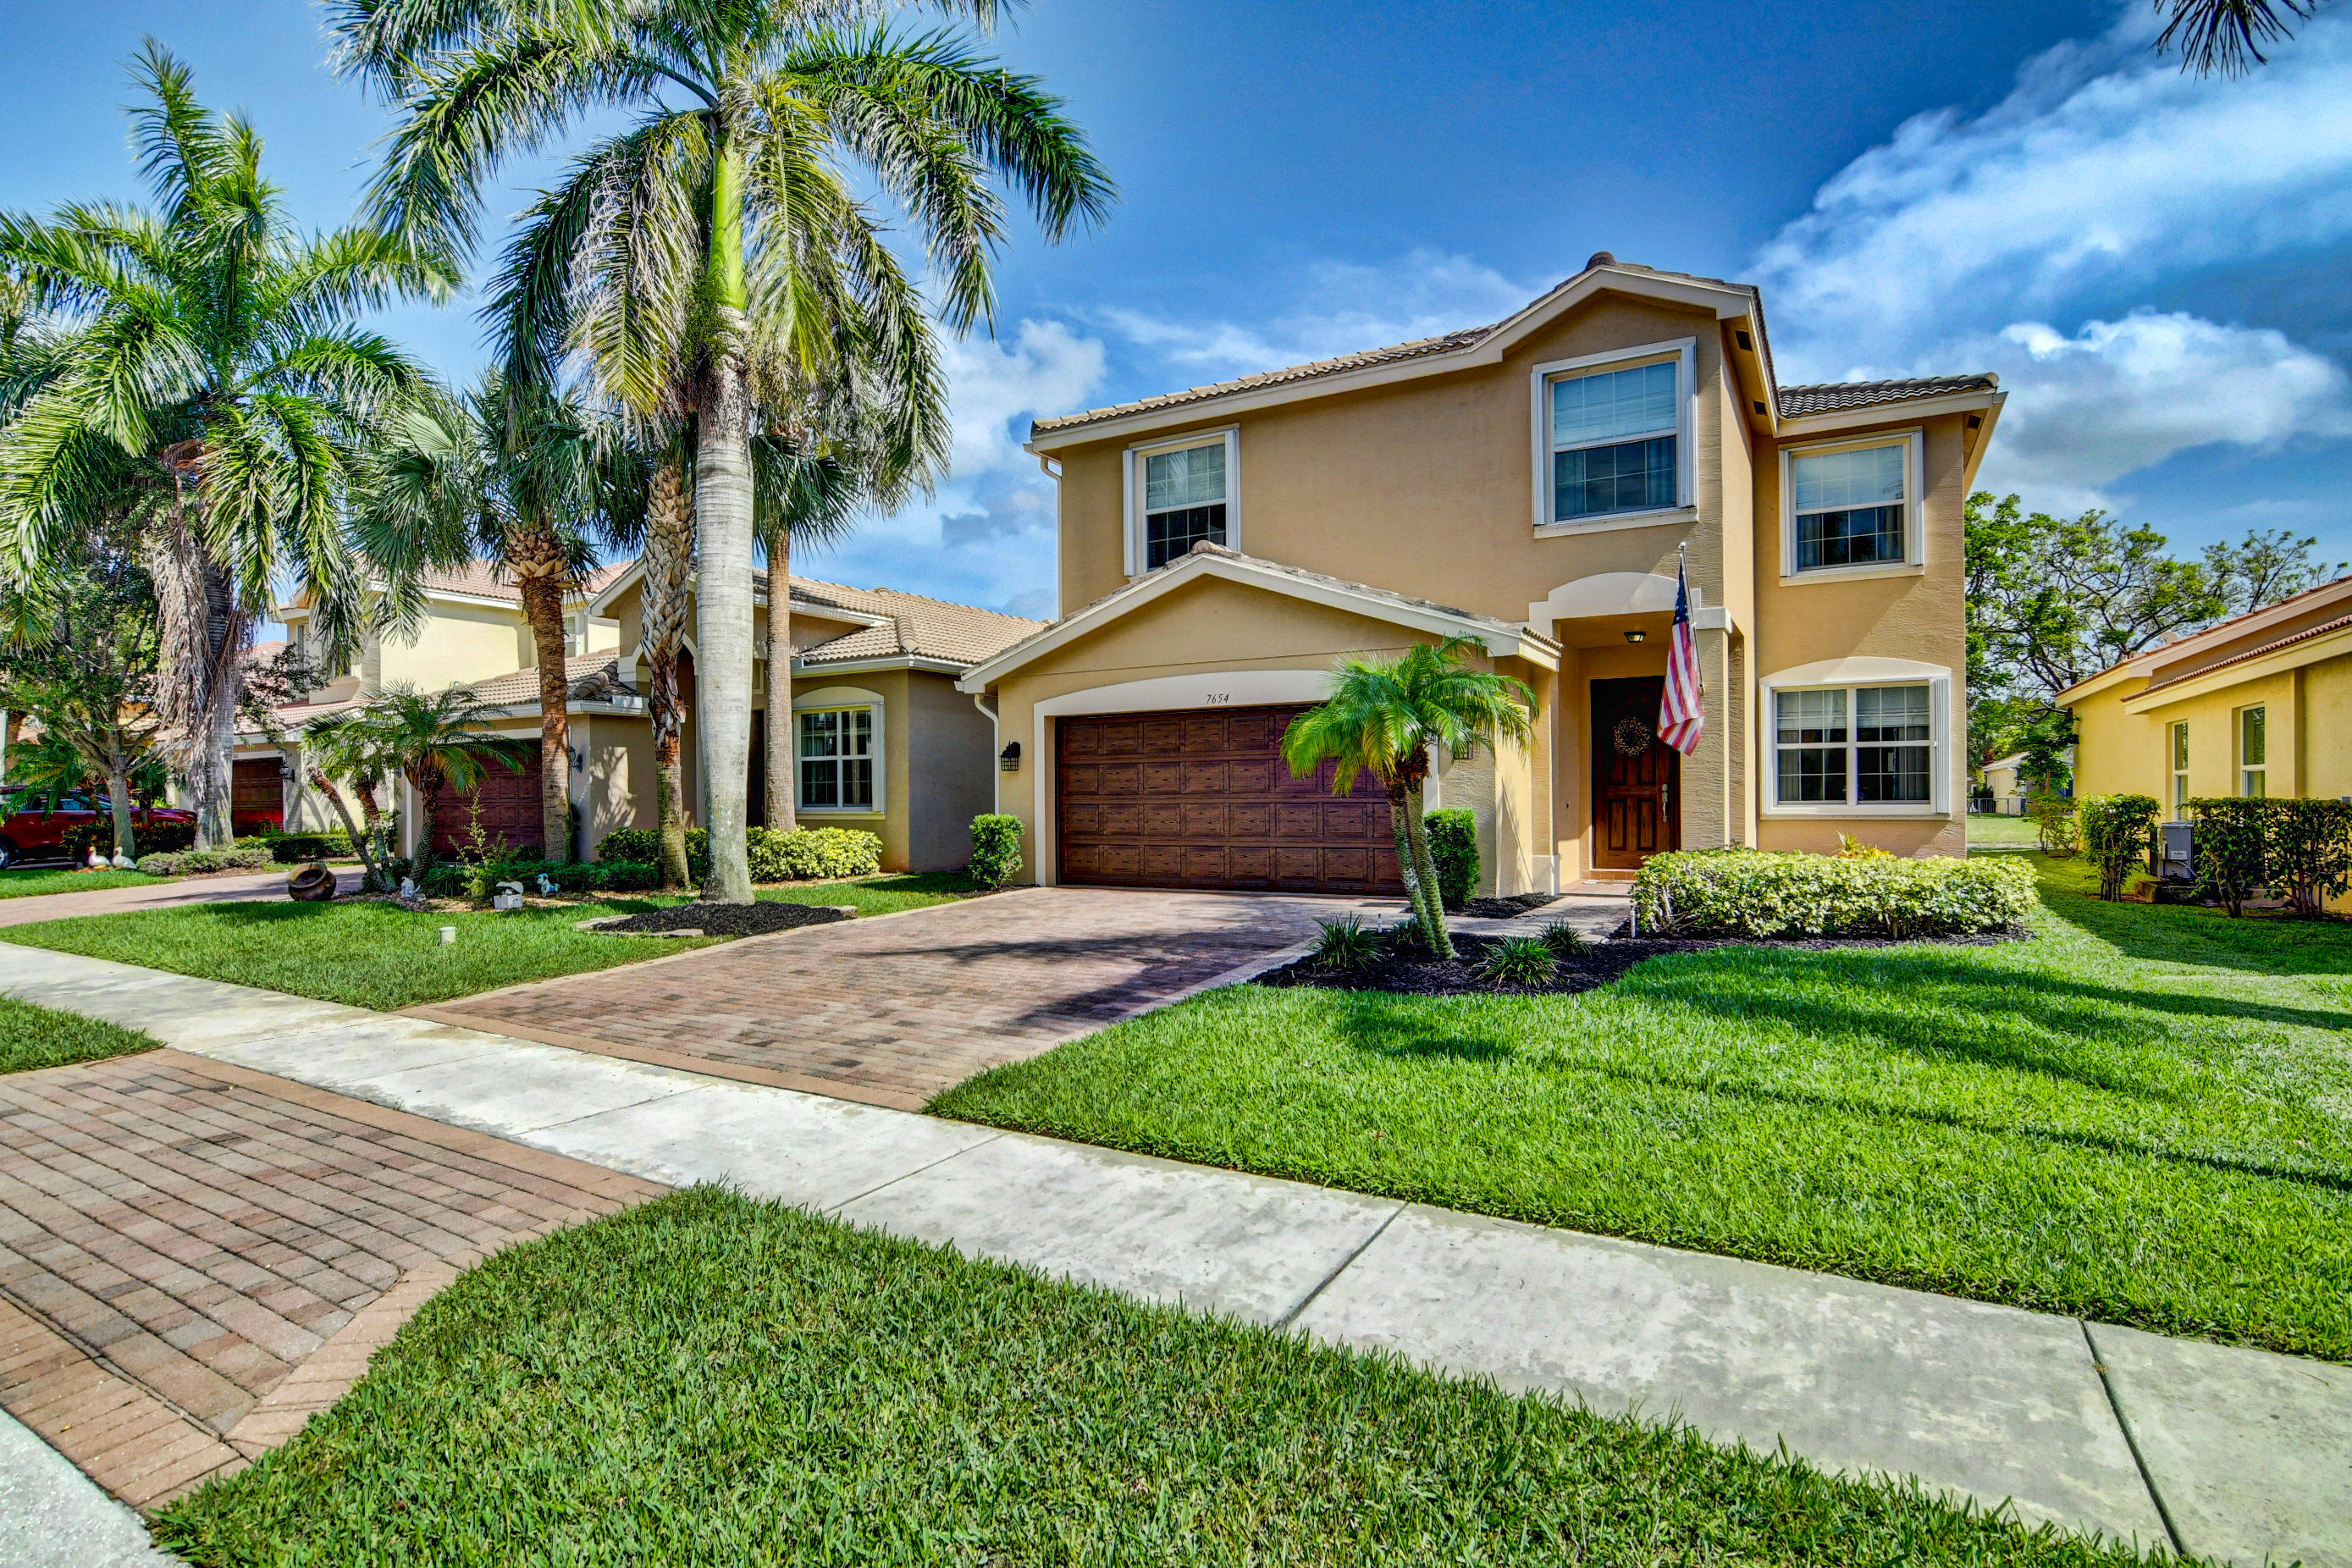 7654  Jewelwood Drive  For Sale 10723480, FL